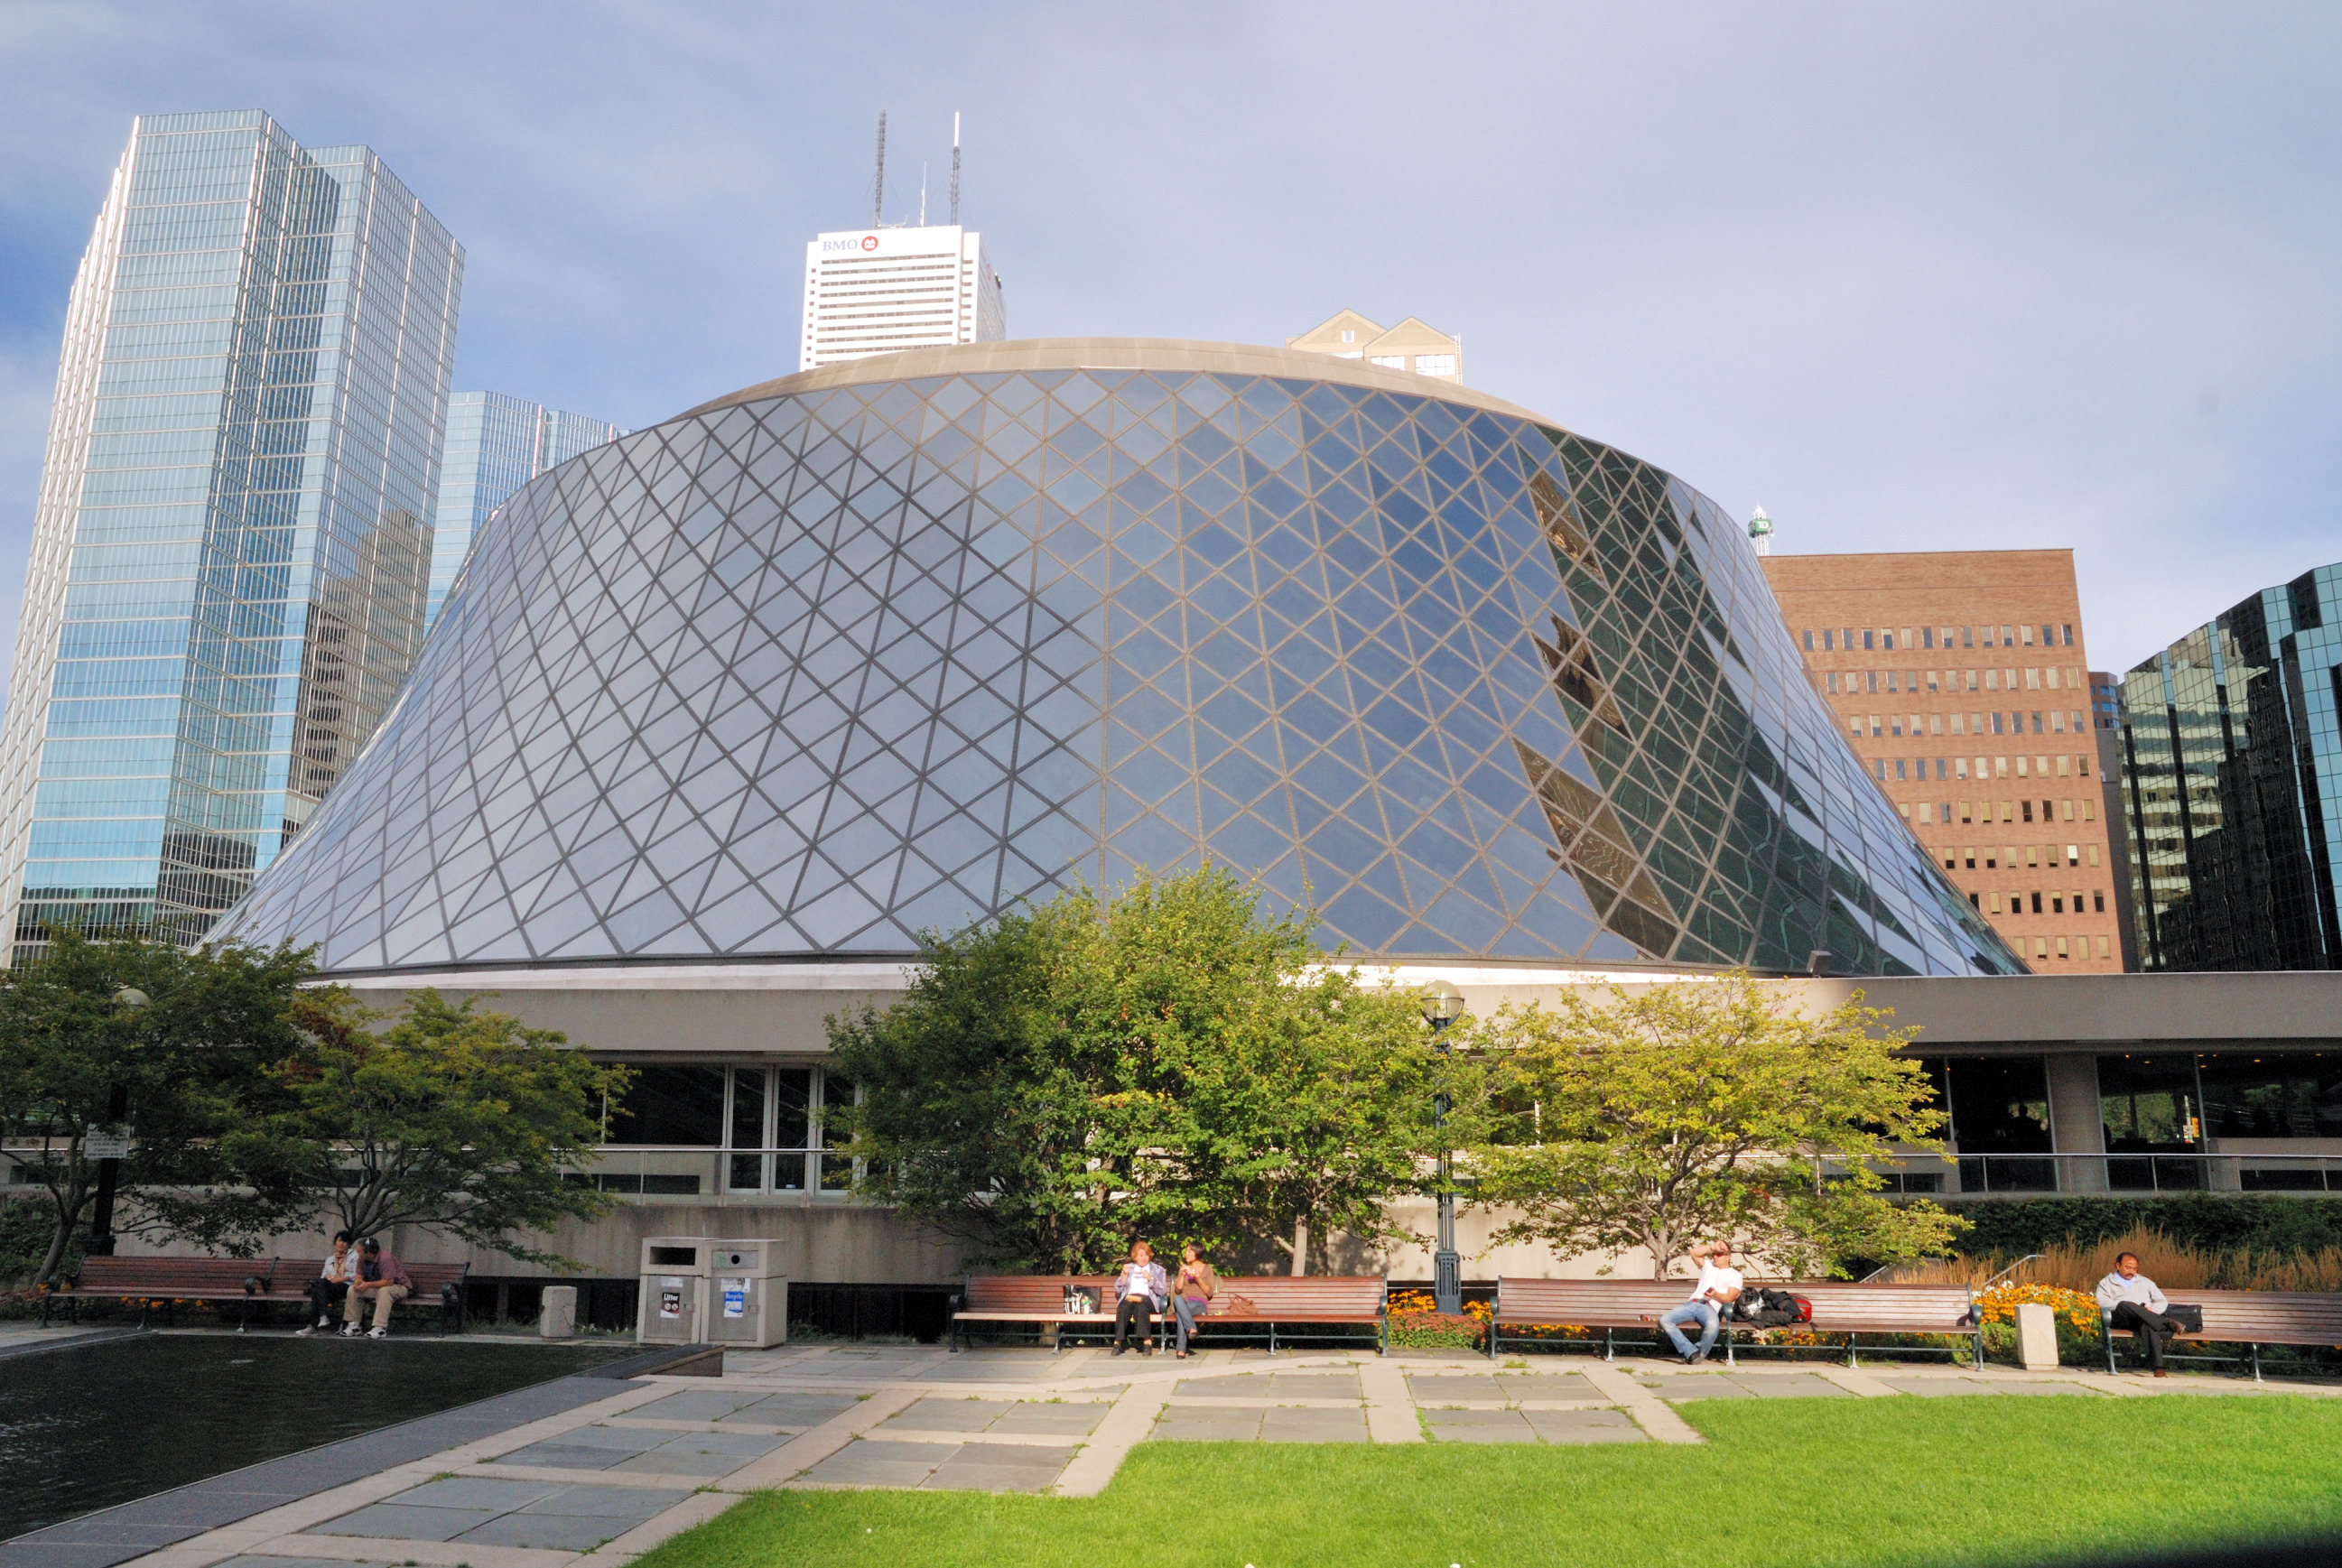 File:Toronto - ON - Roy Thomson Hall.jpg - Wikimedia Commons